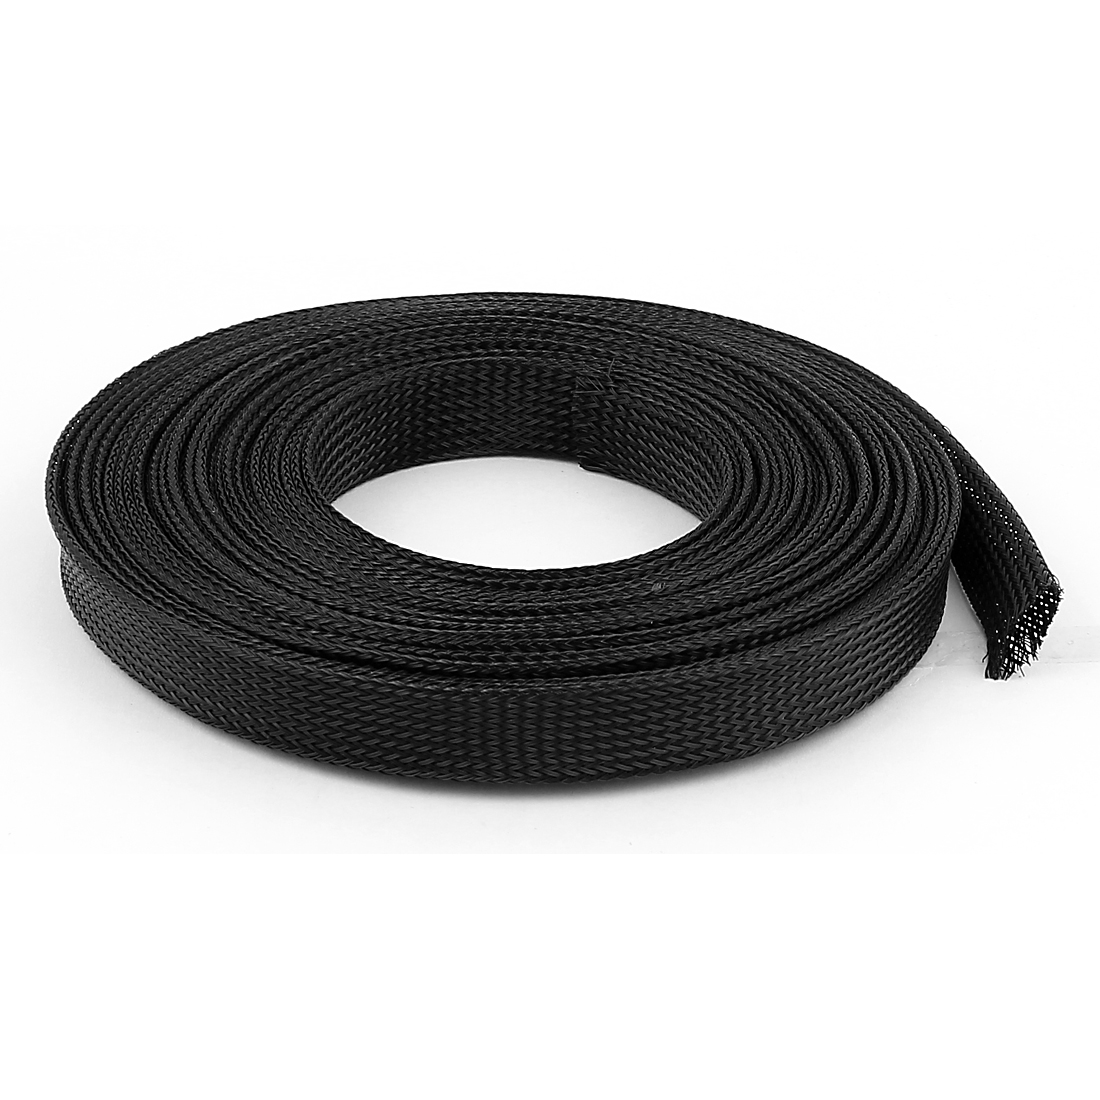 20mm Diameter 10m Length Black Wire Polyester Expandable Cable Sleeve